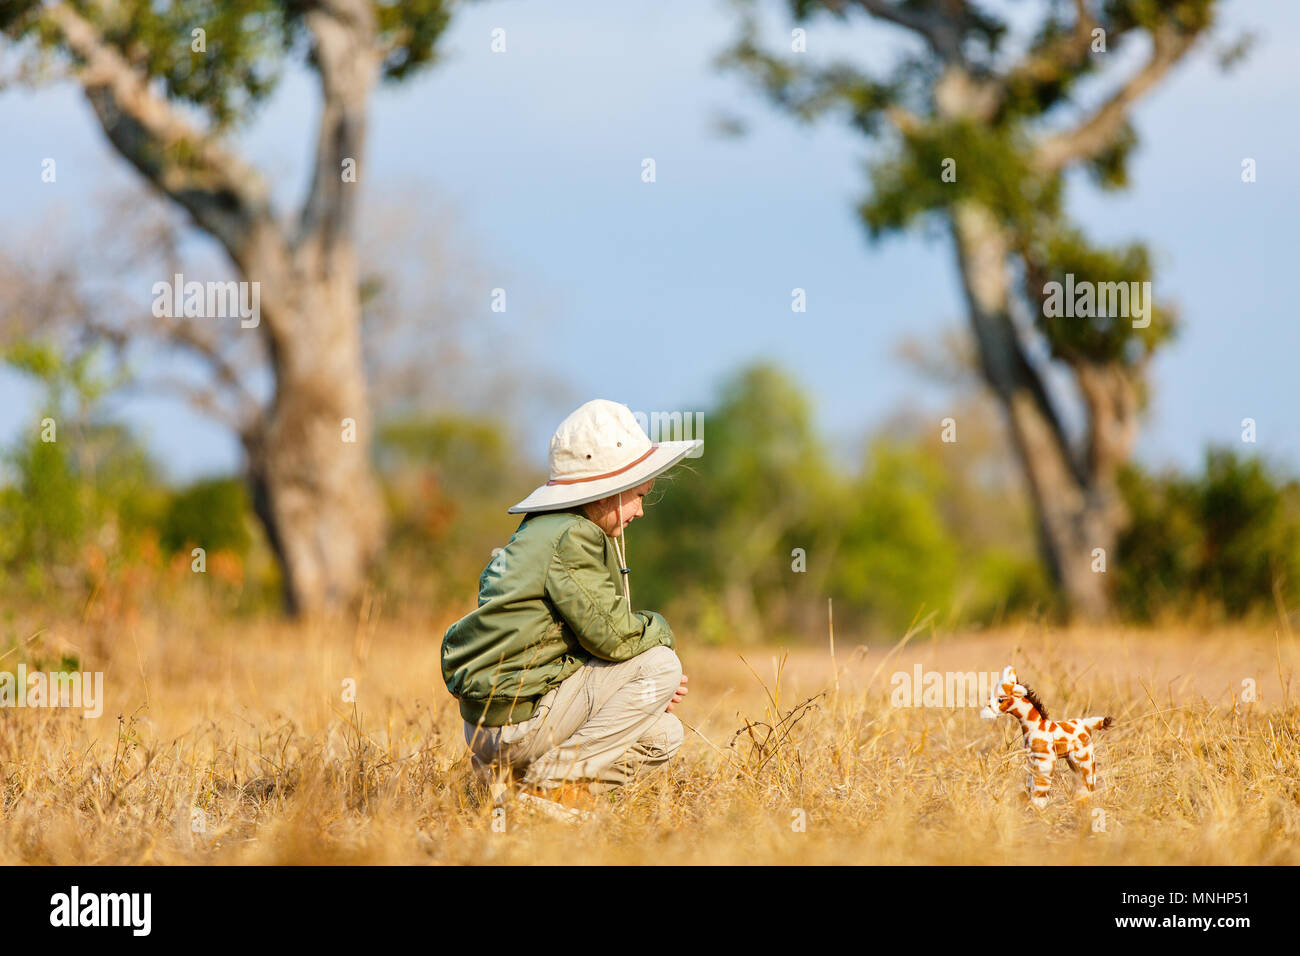 Adorable little girl in South Africa safari with giraffe toy - Stock Image